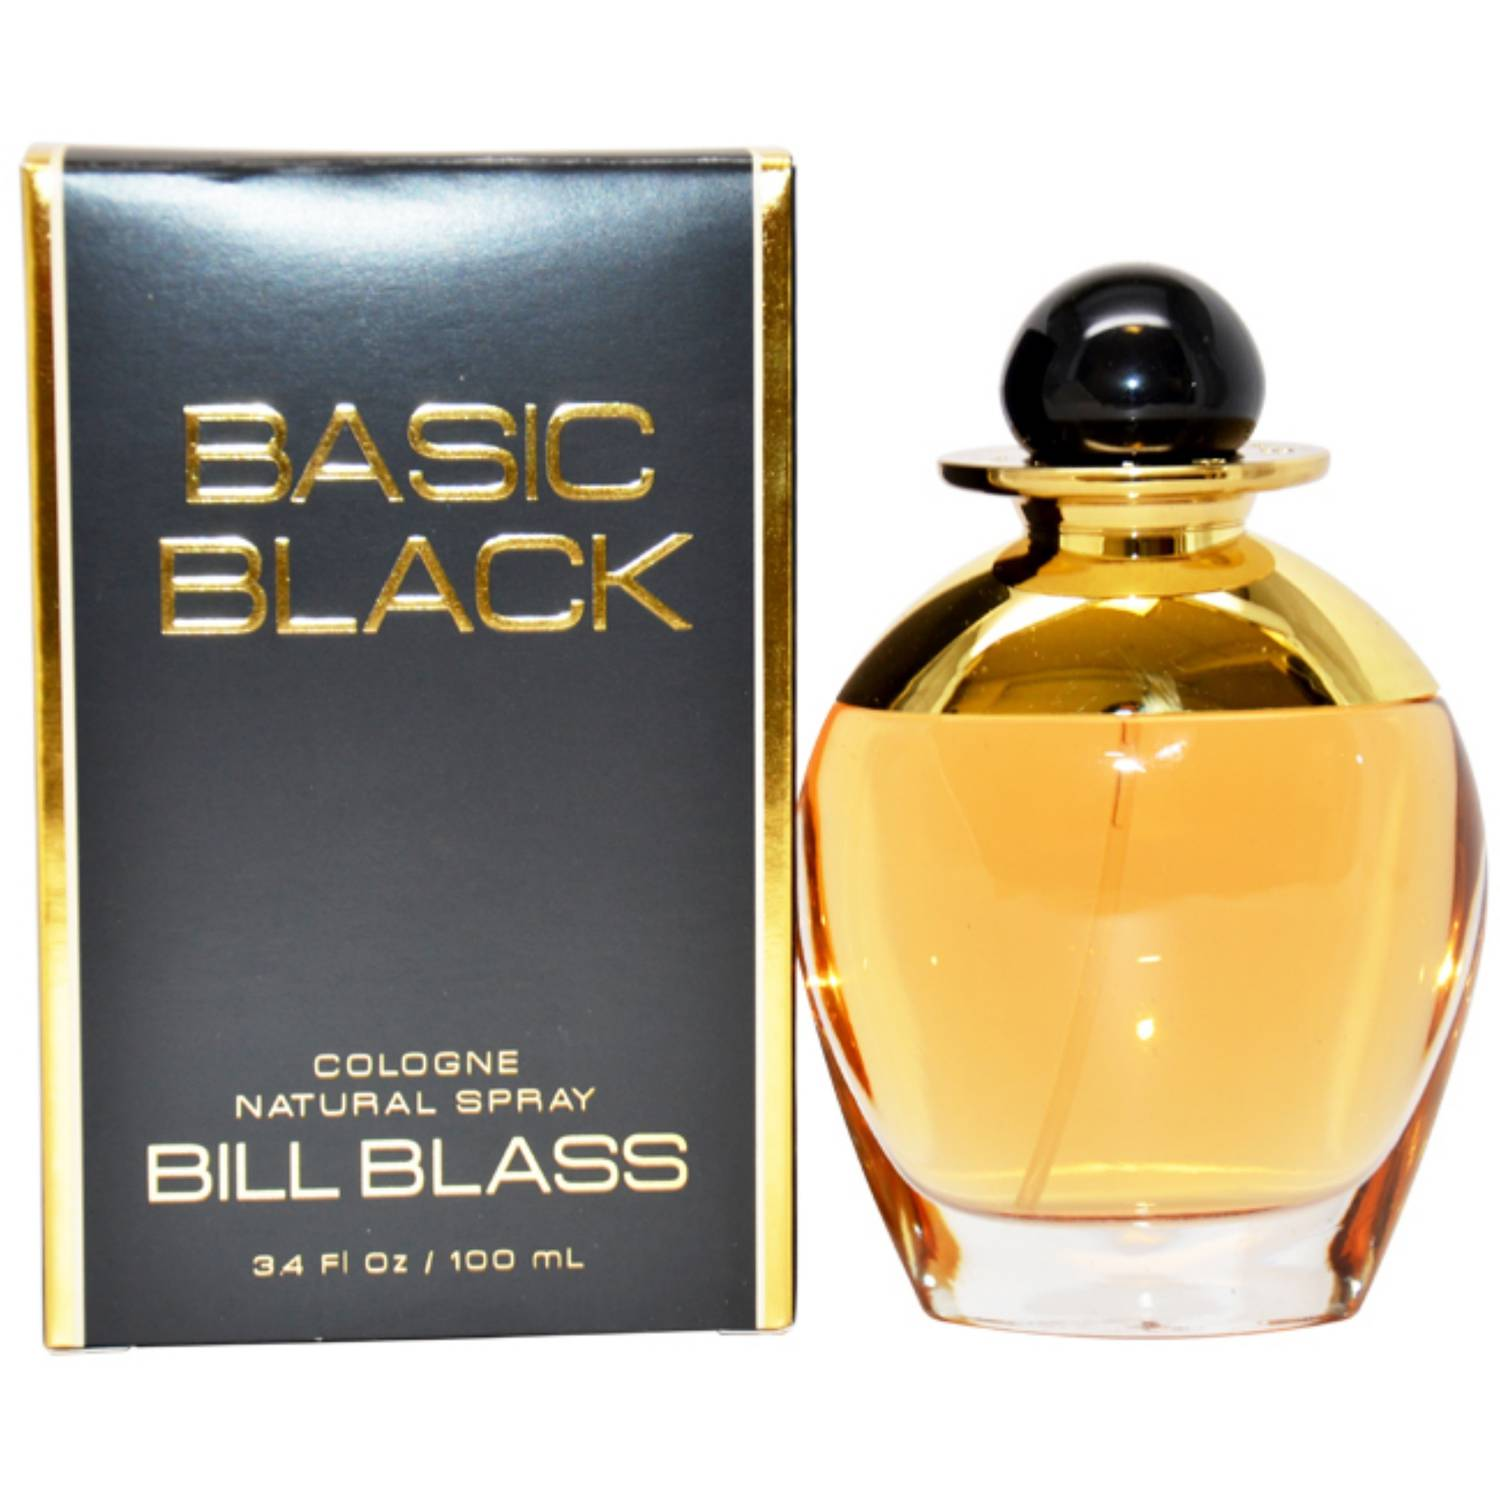 Bill Blass Basic Black for Women Cologne Spray, 3.4 oz